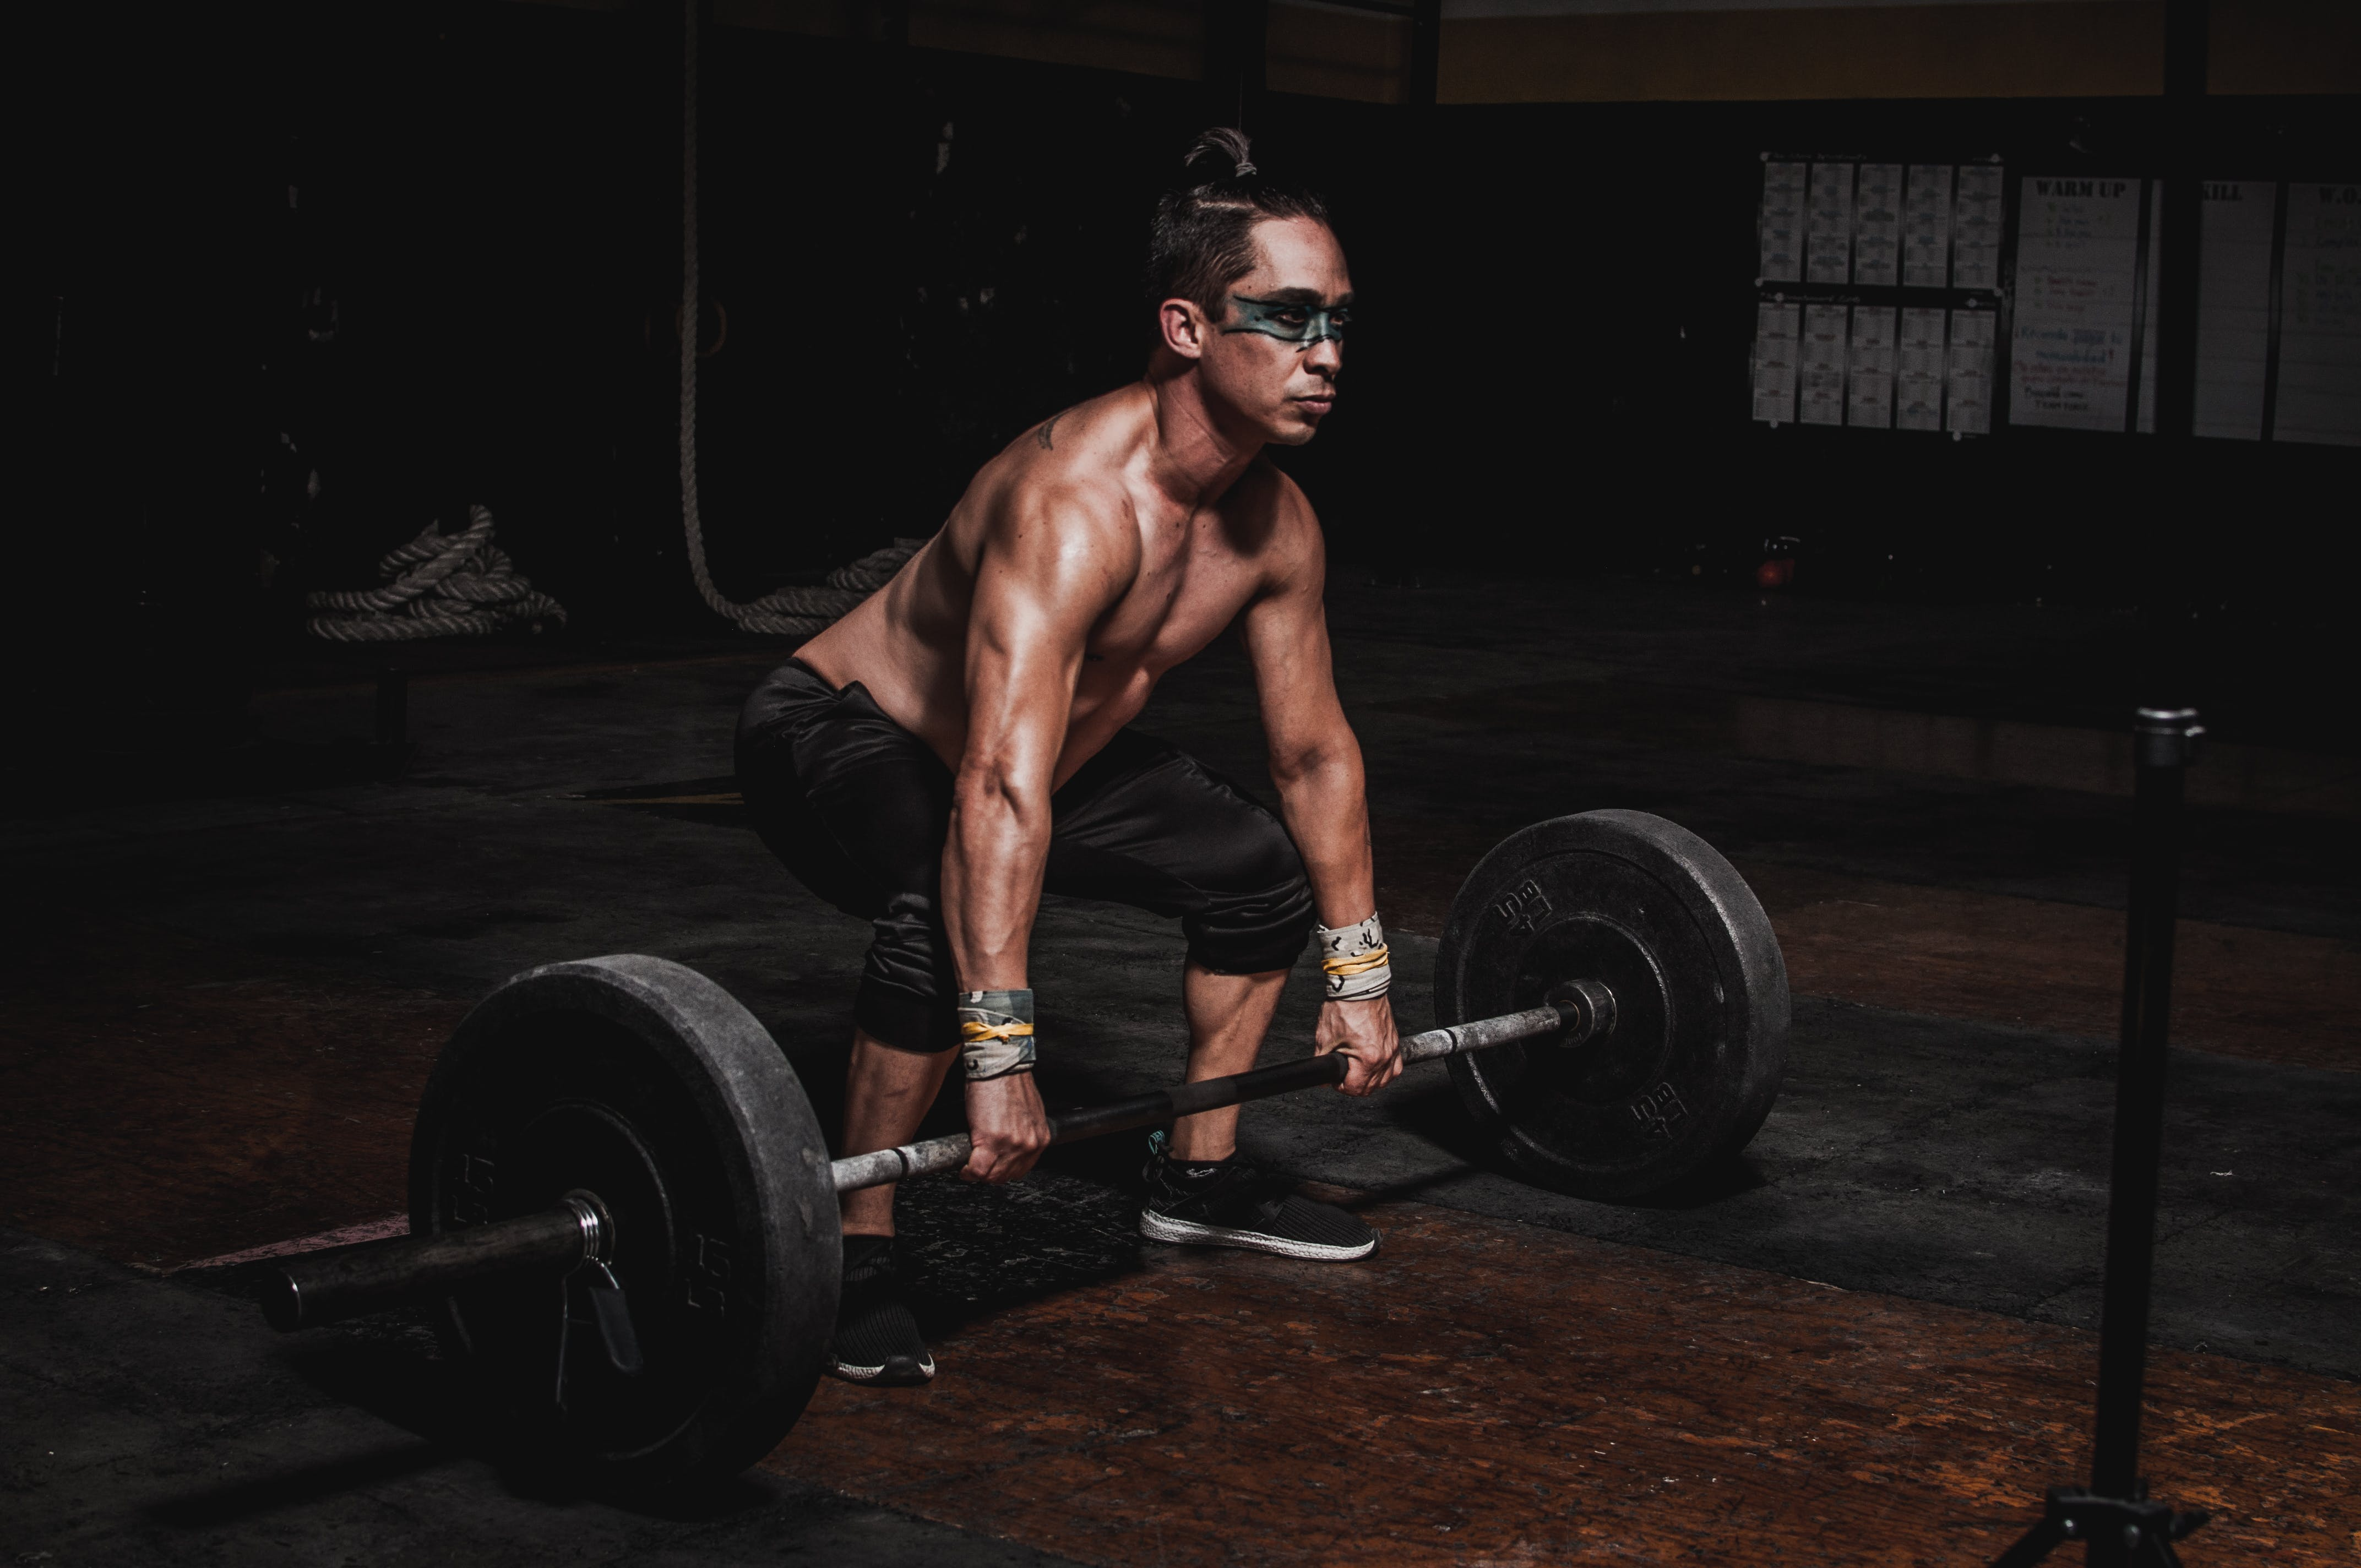 Shirtless Man Lifting Barbell